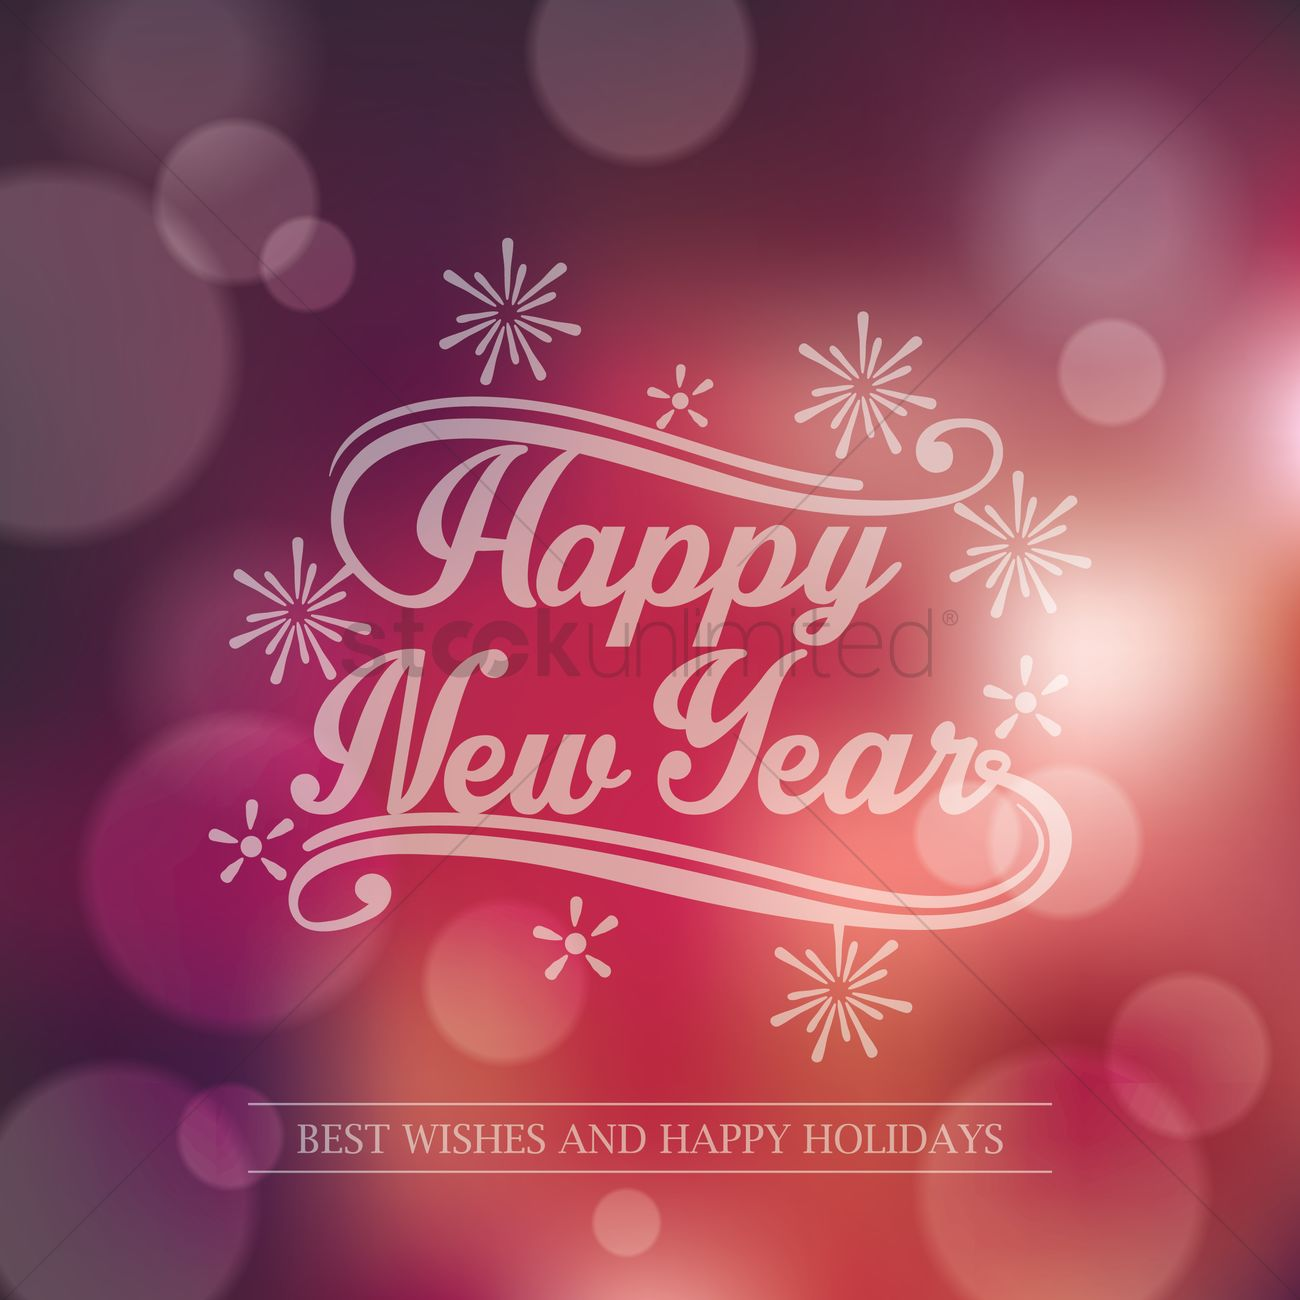 New Year Greeting Vector Image 1805292 Stockunlimited